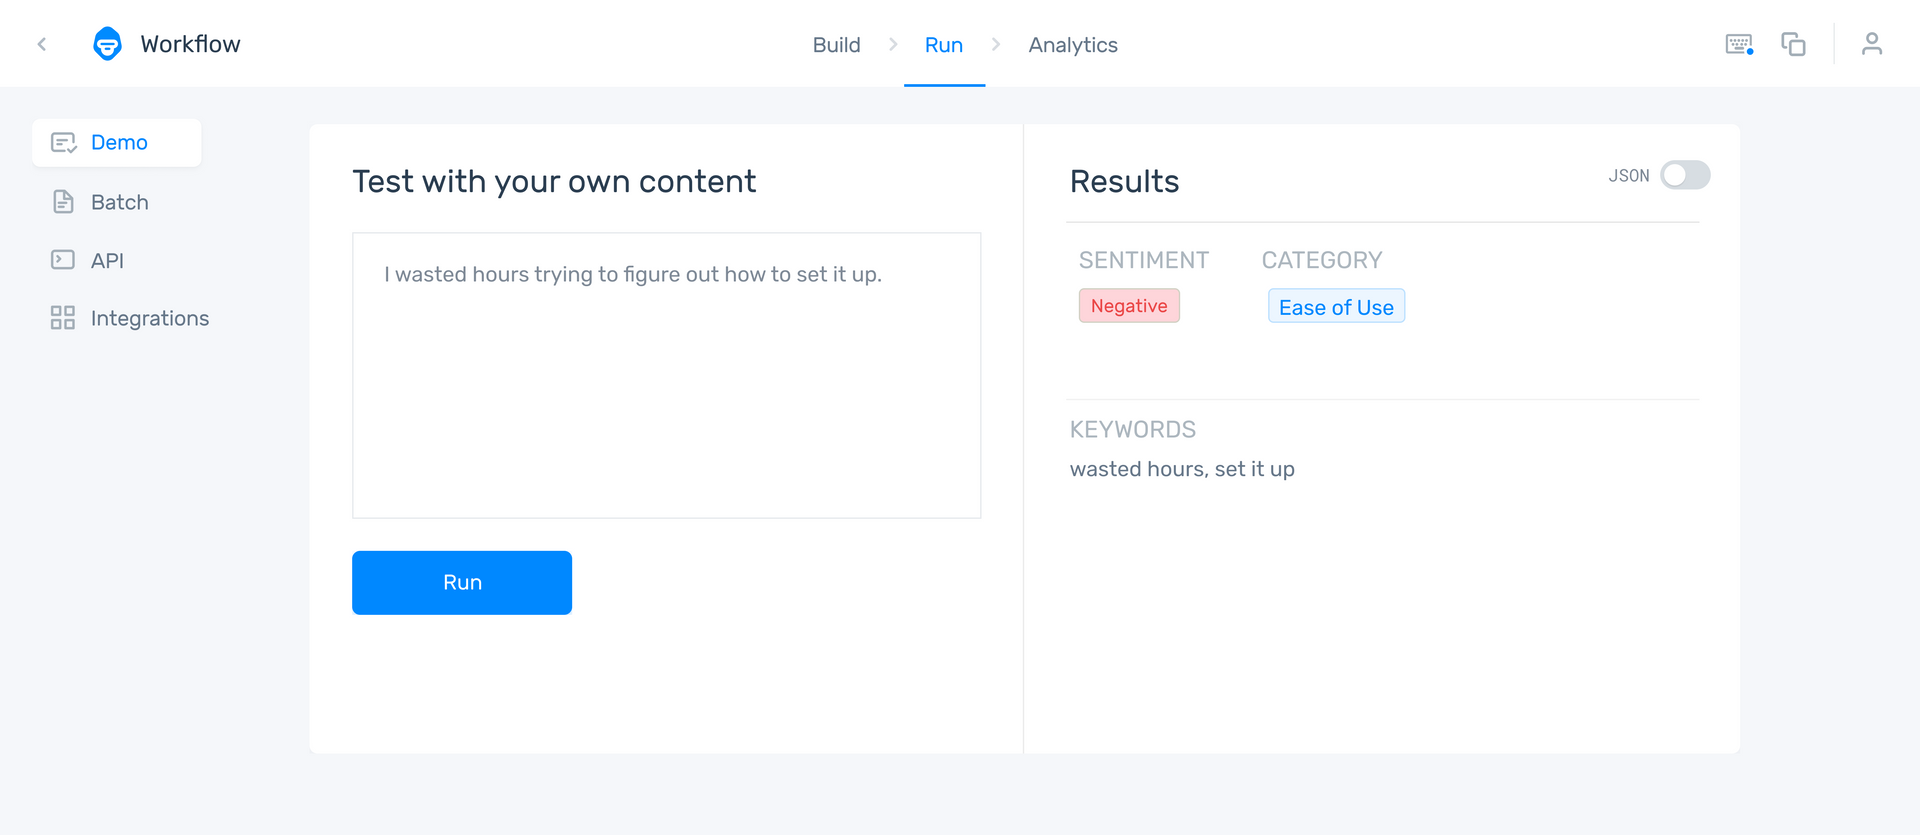 """An aspect-based sentiment analyzer showing the comment: """"I wasted hours trying to figure out how to set it up."""" as Negative under the category Ease of Use."""